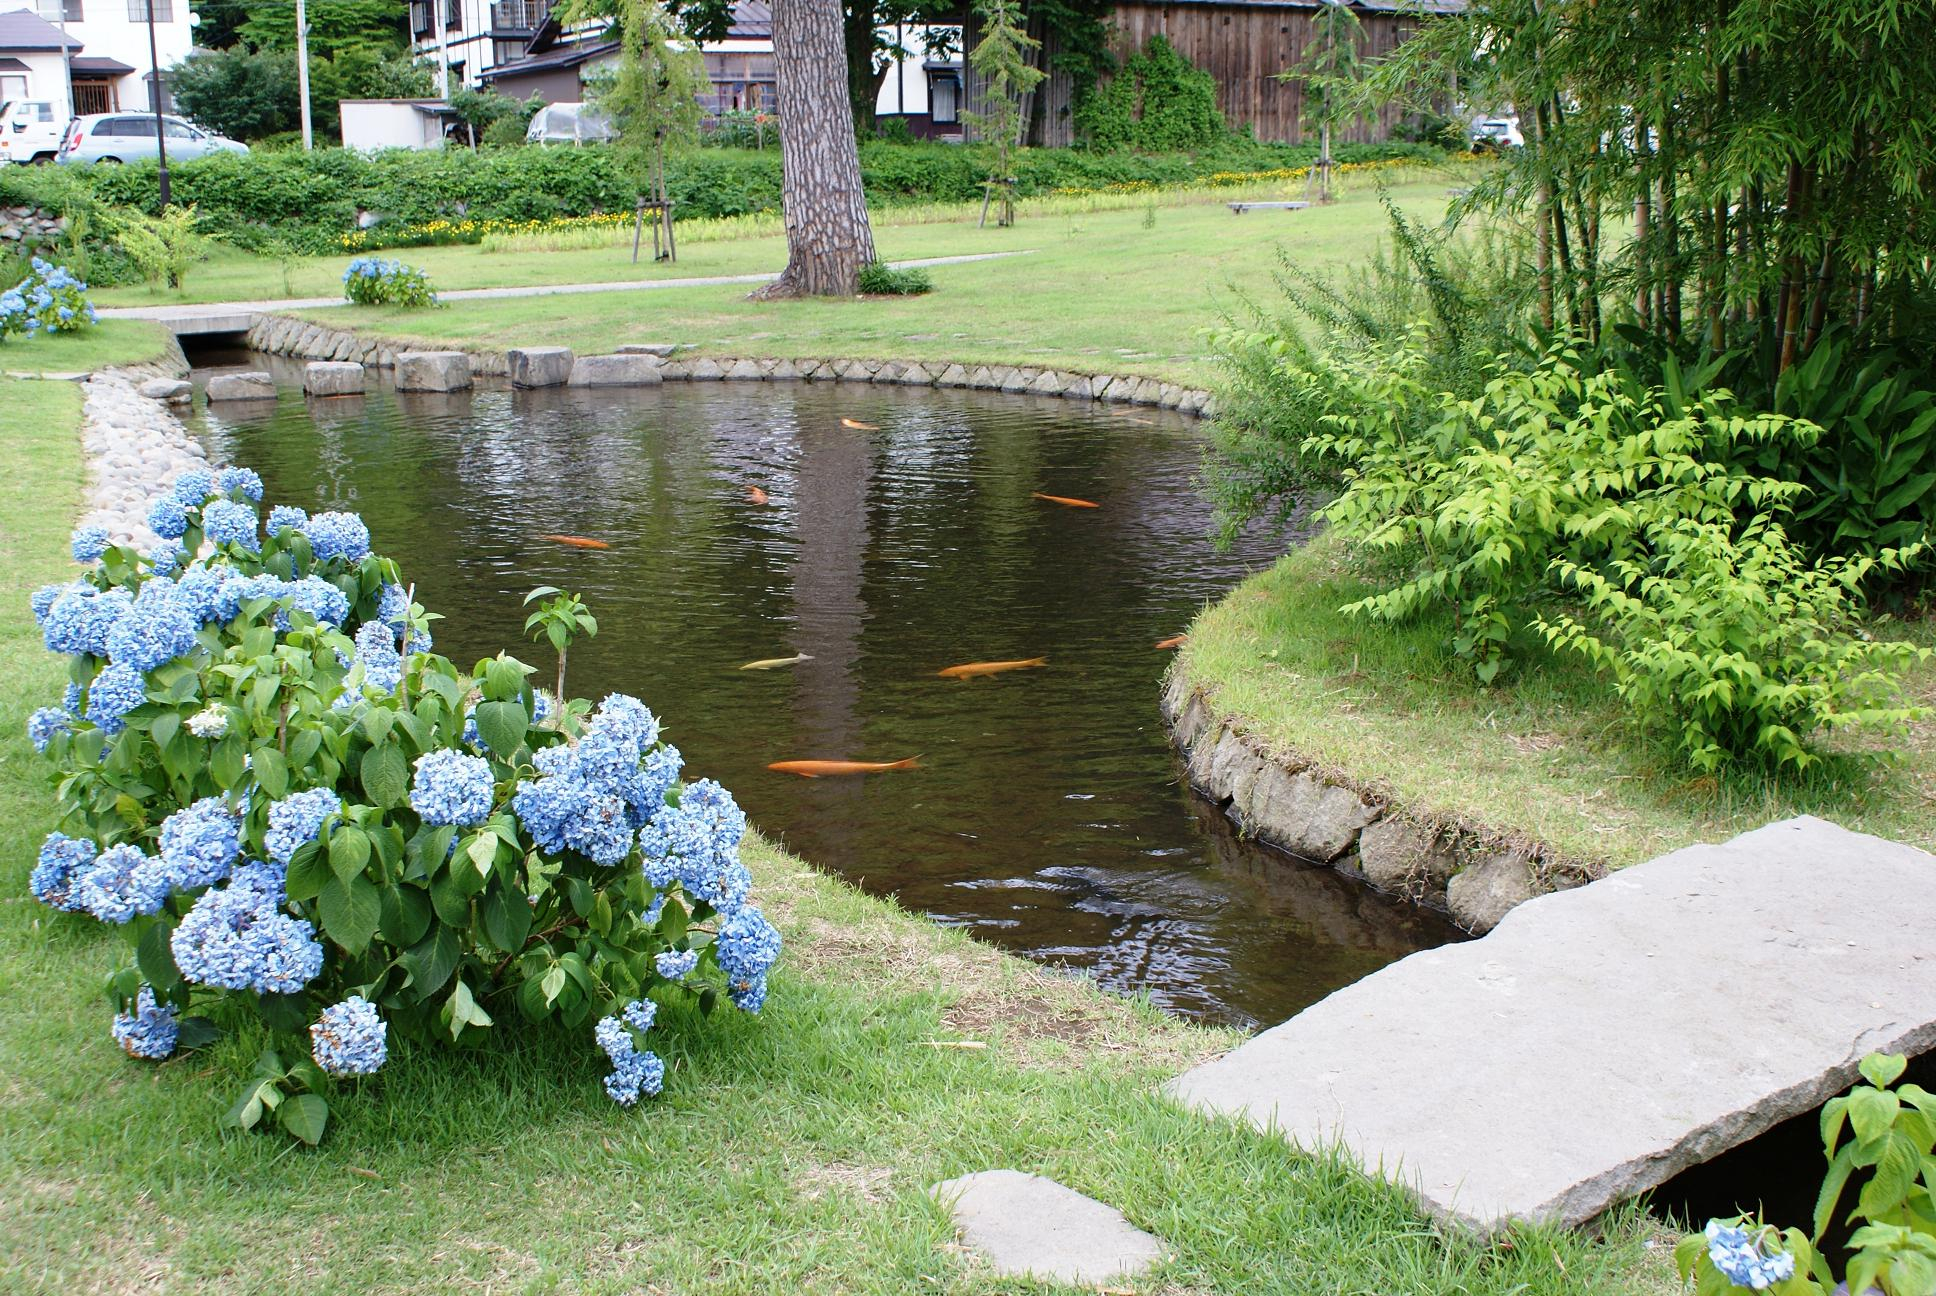 Backyard Fish Farming Raise Fish In Your Home Pond Worldwide within Backyard Fish Pond Ideas